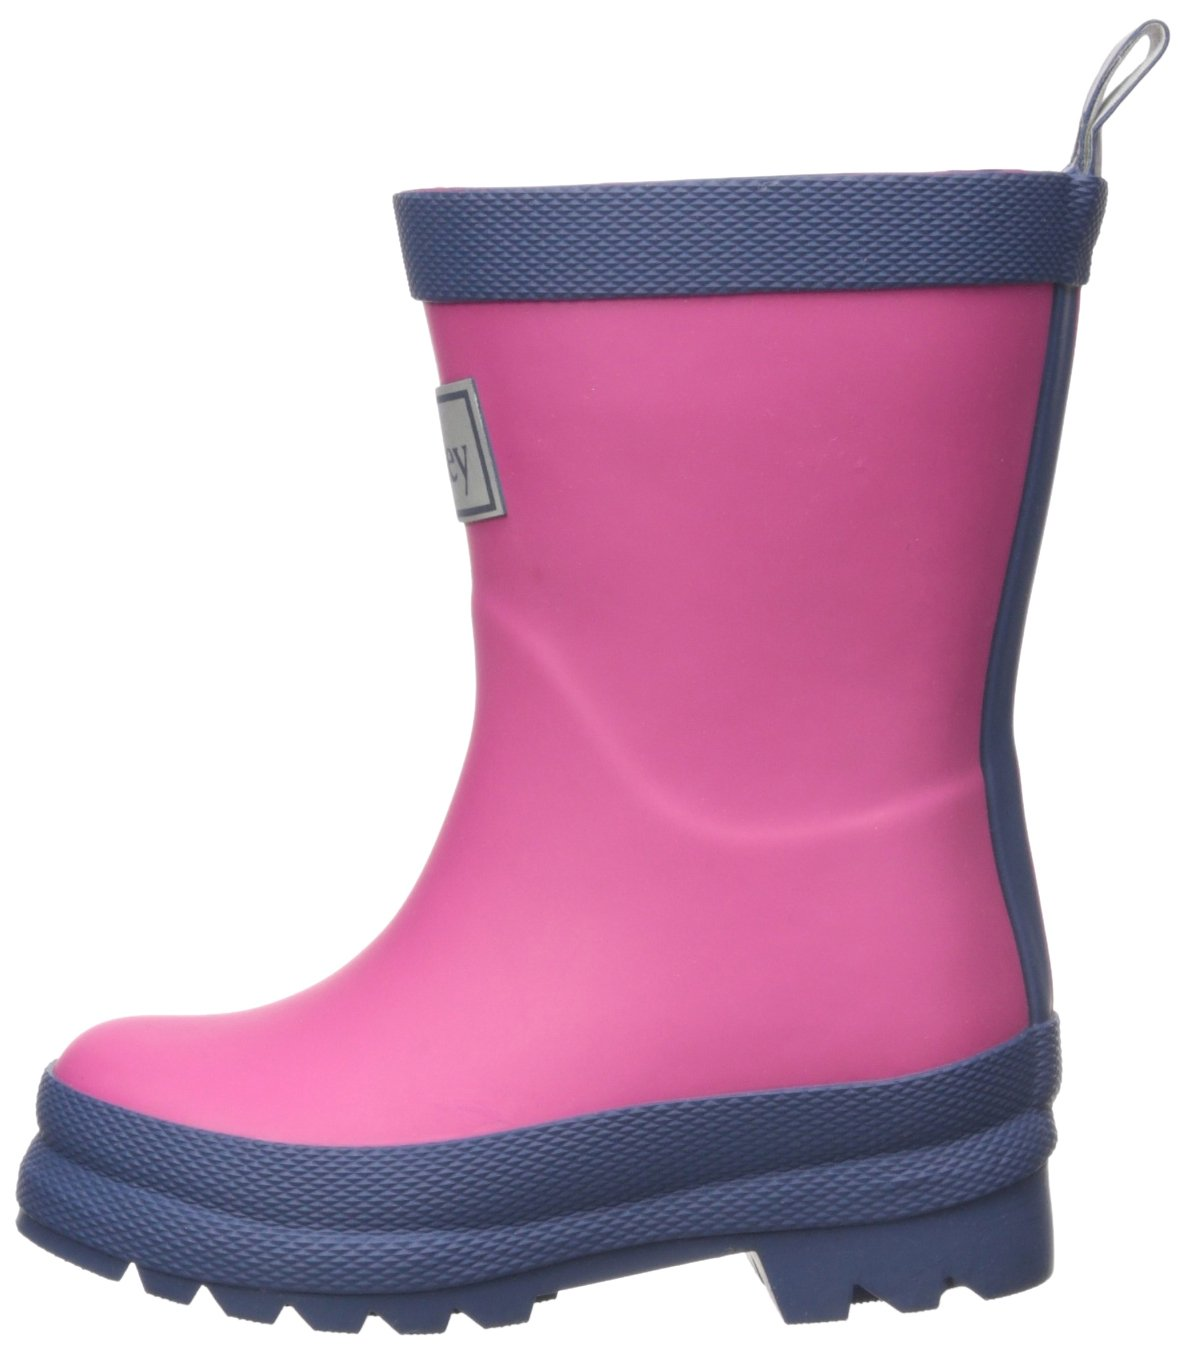 Hatley Kids' Classic Boots Girls Rain Accessory, Fuchsia Navy, 7 M US Toddler by Hatley (Image #5)